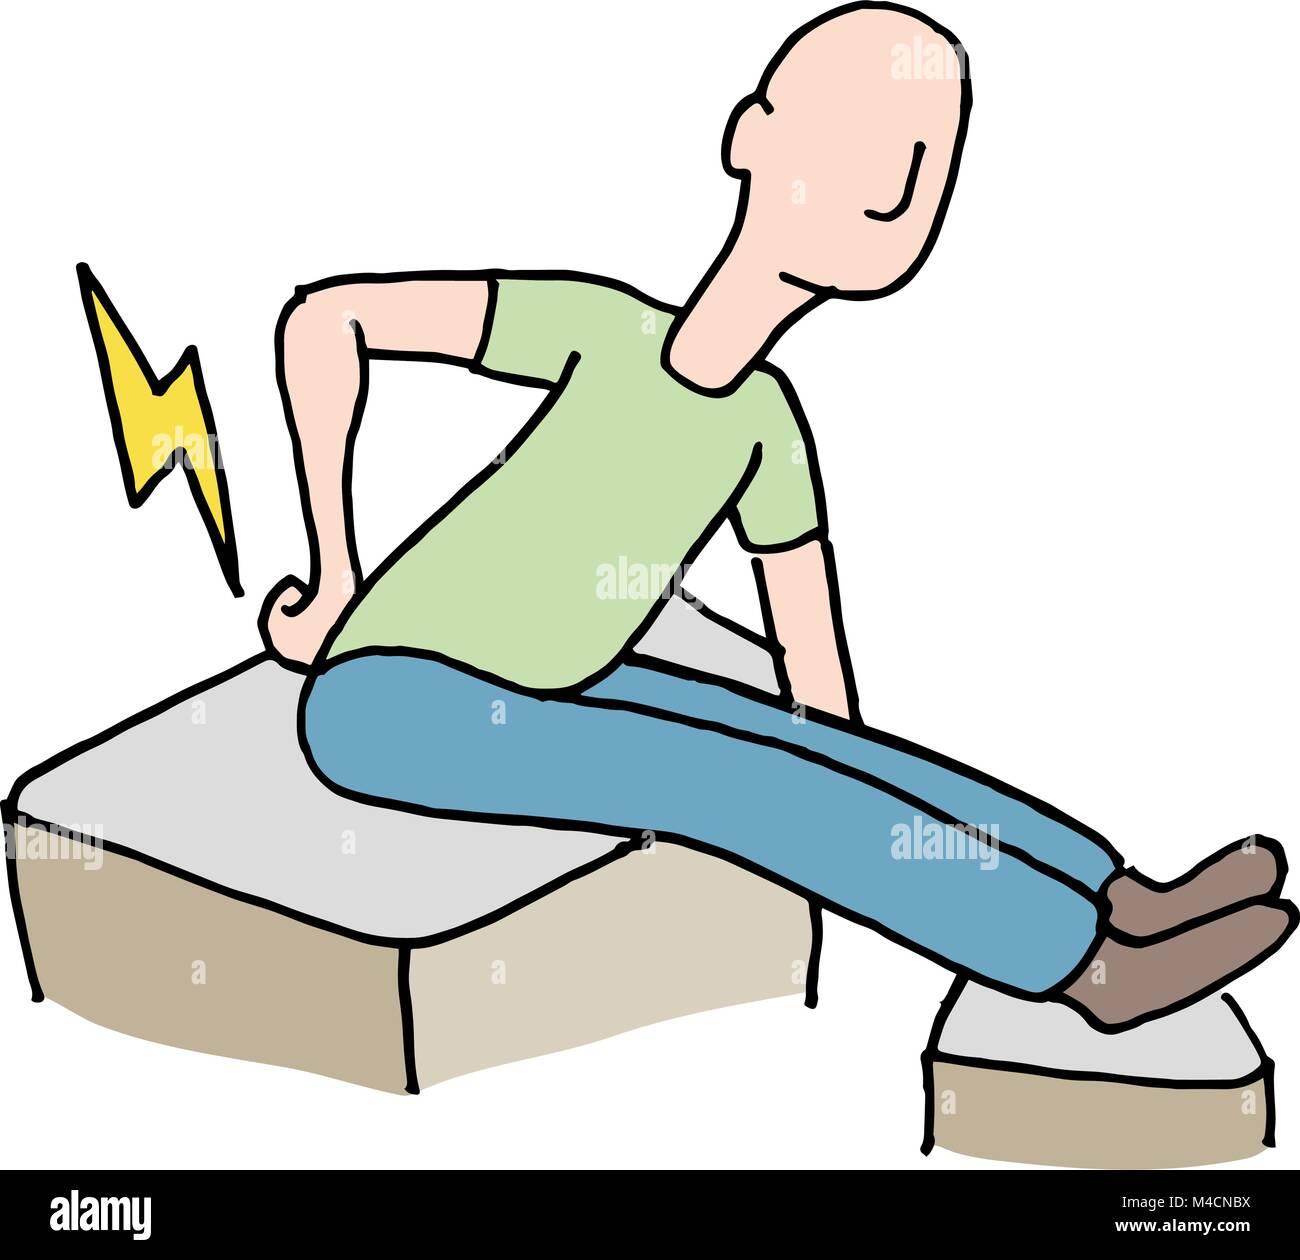 An image of a Man with back pain problem. - Stock Vector